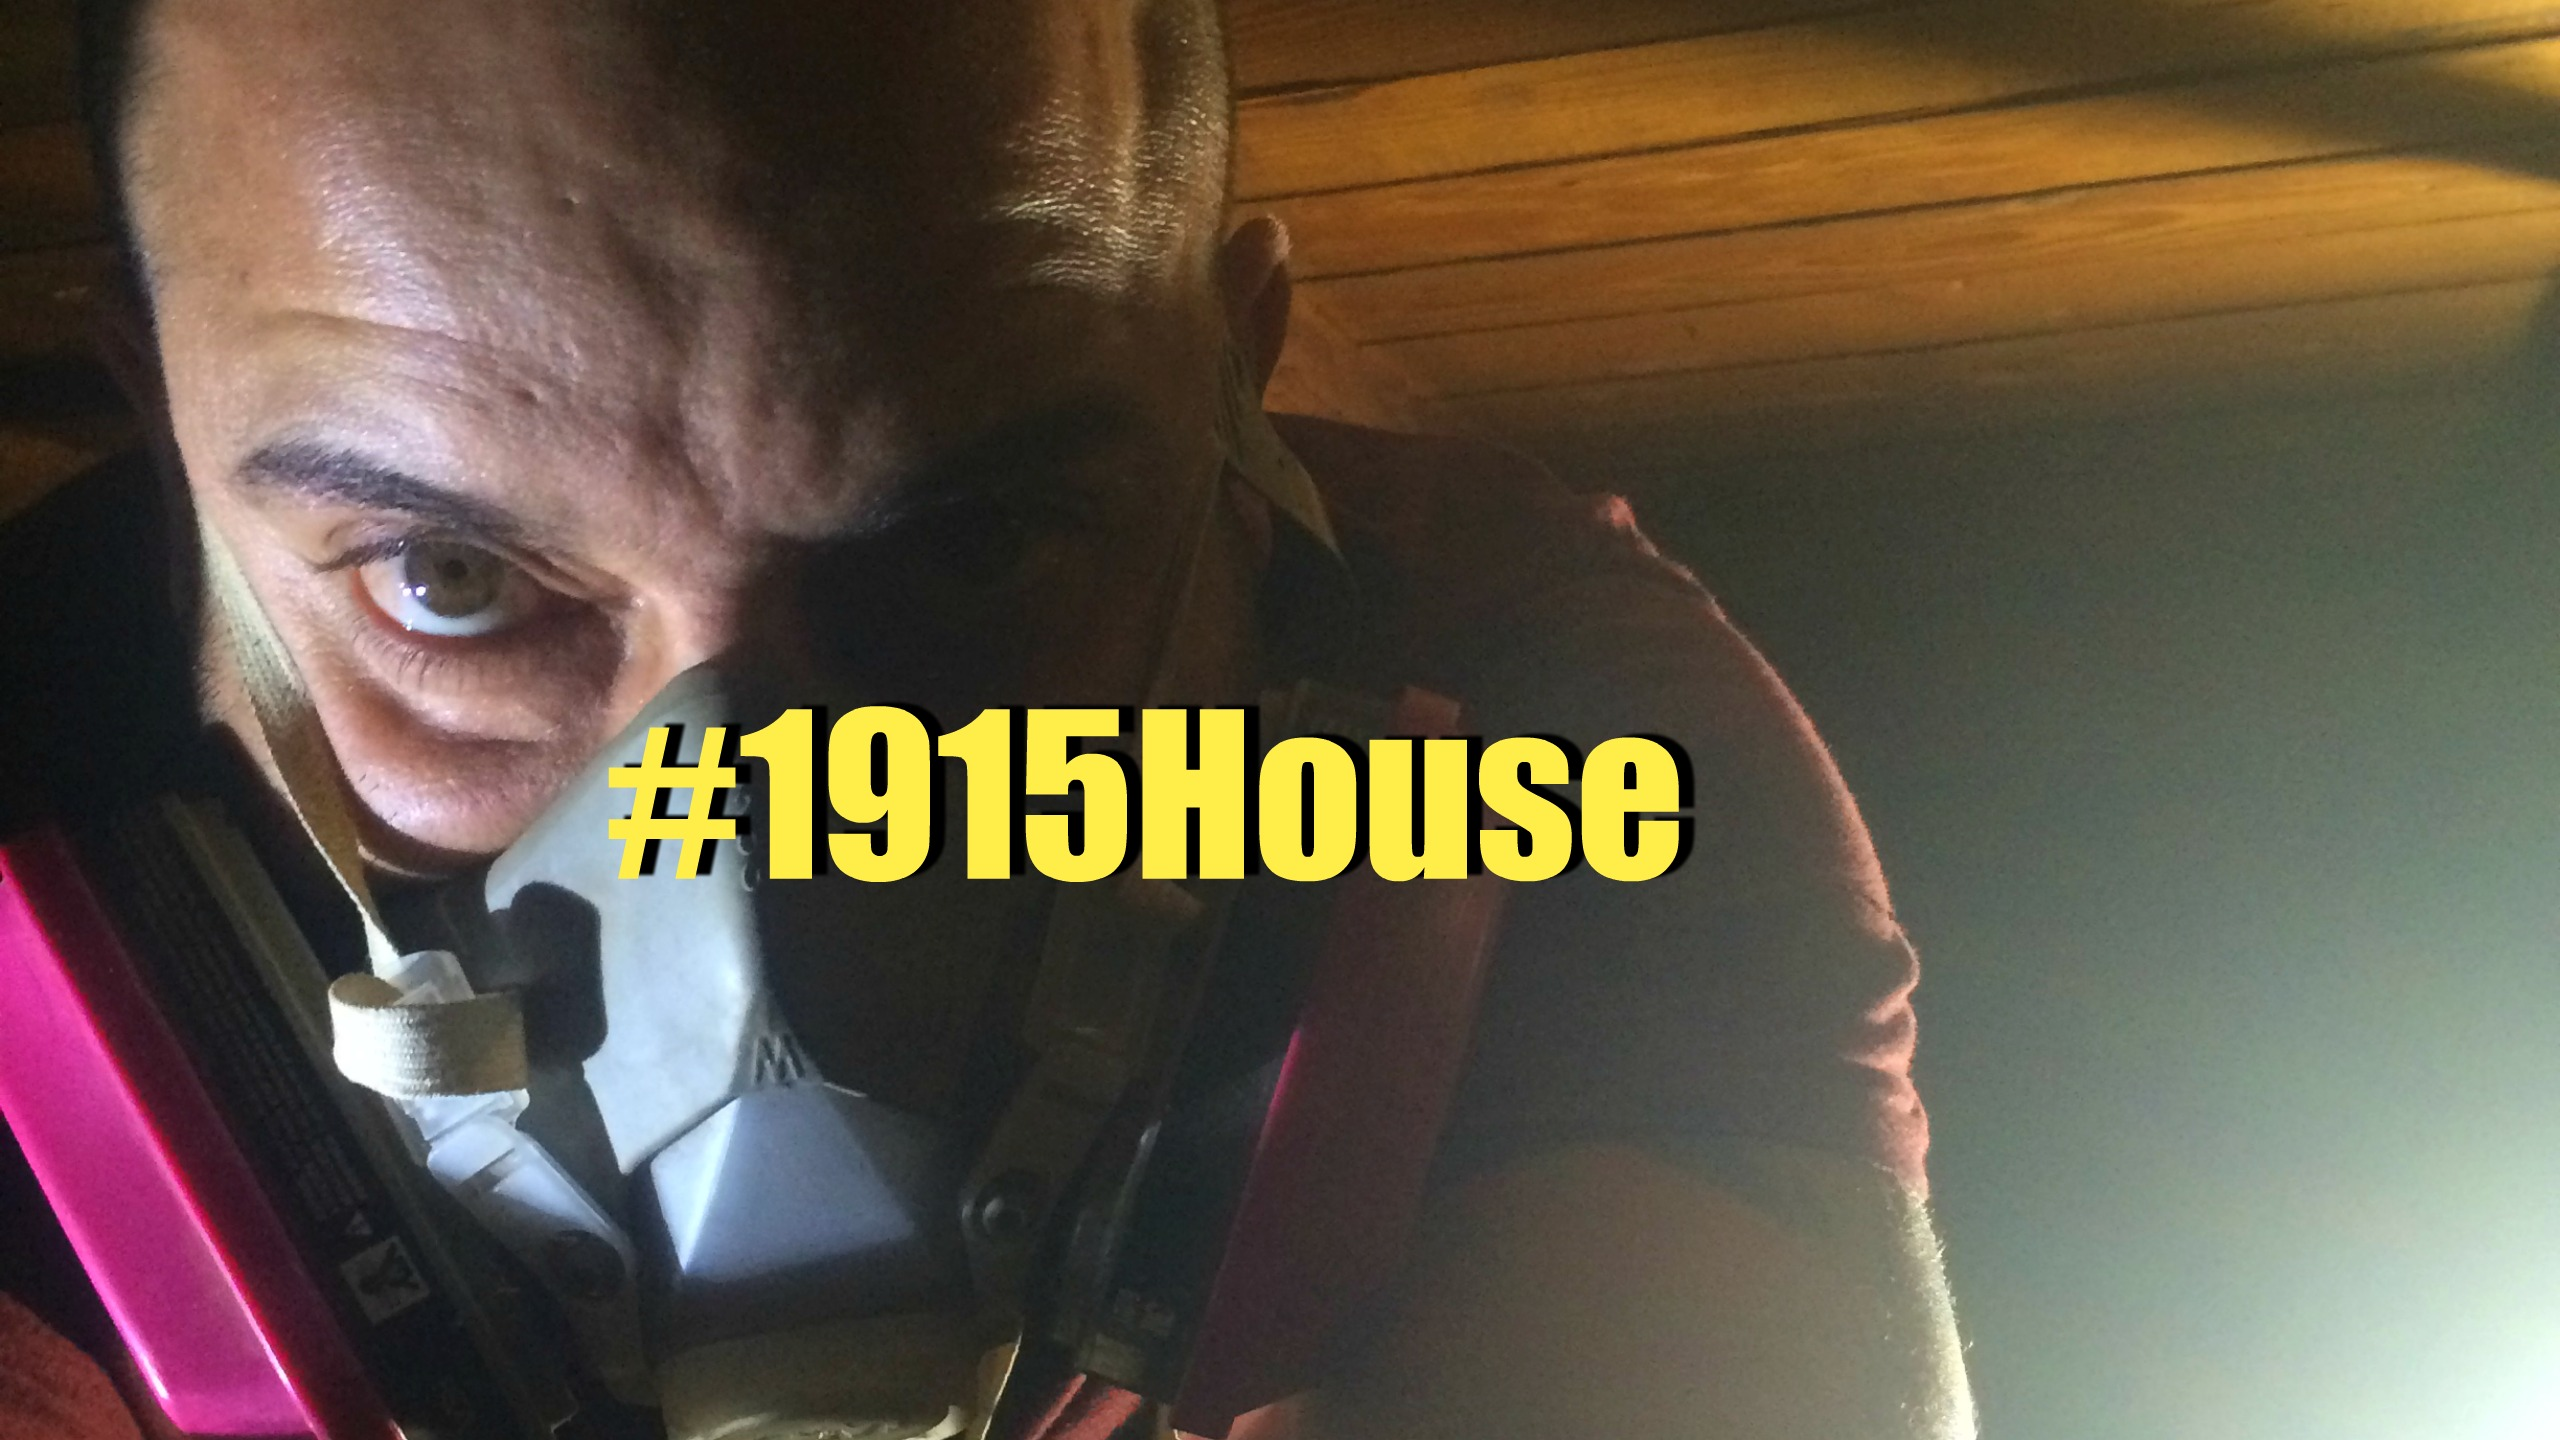 What is happening at #1915House?